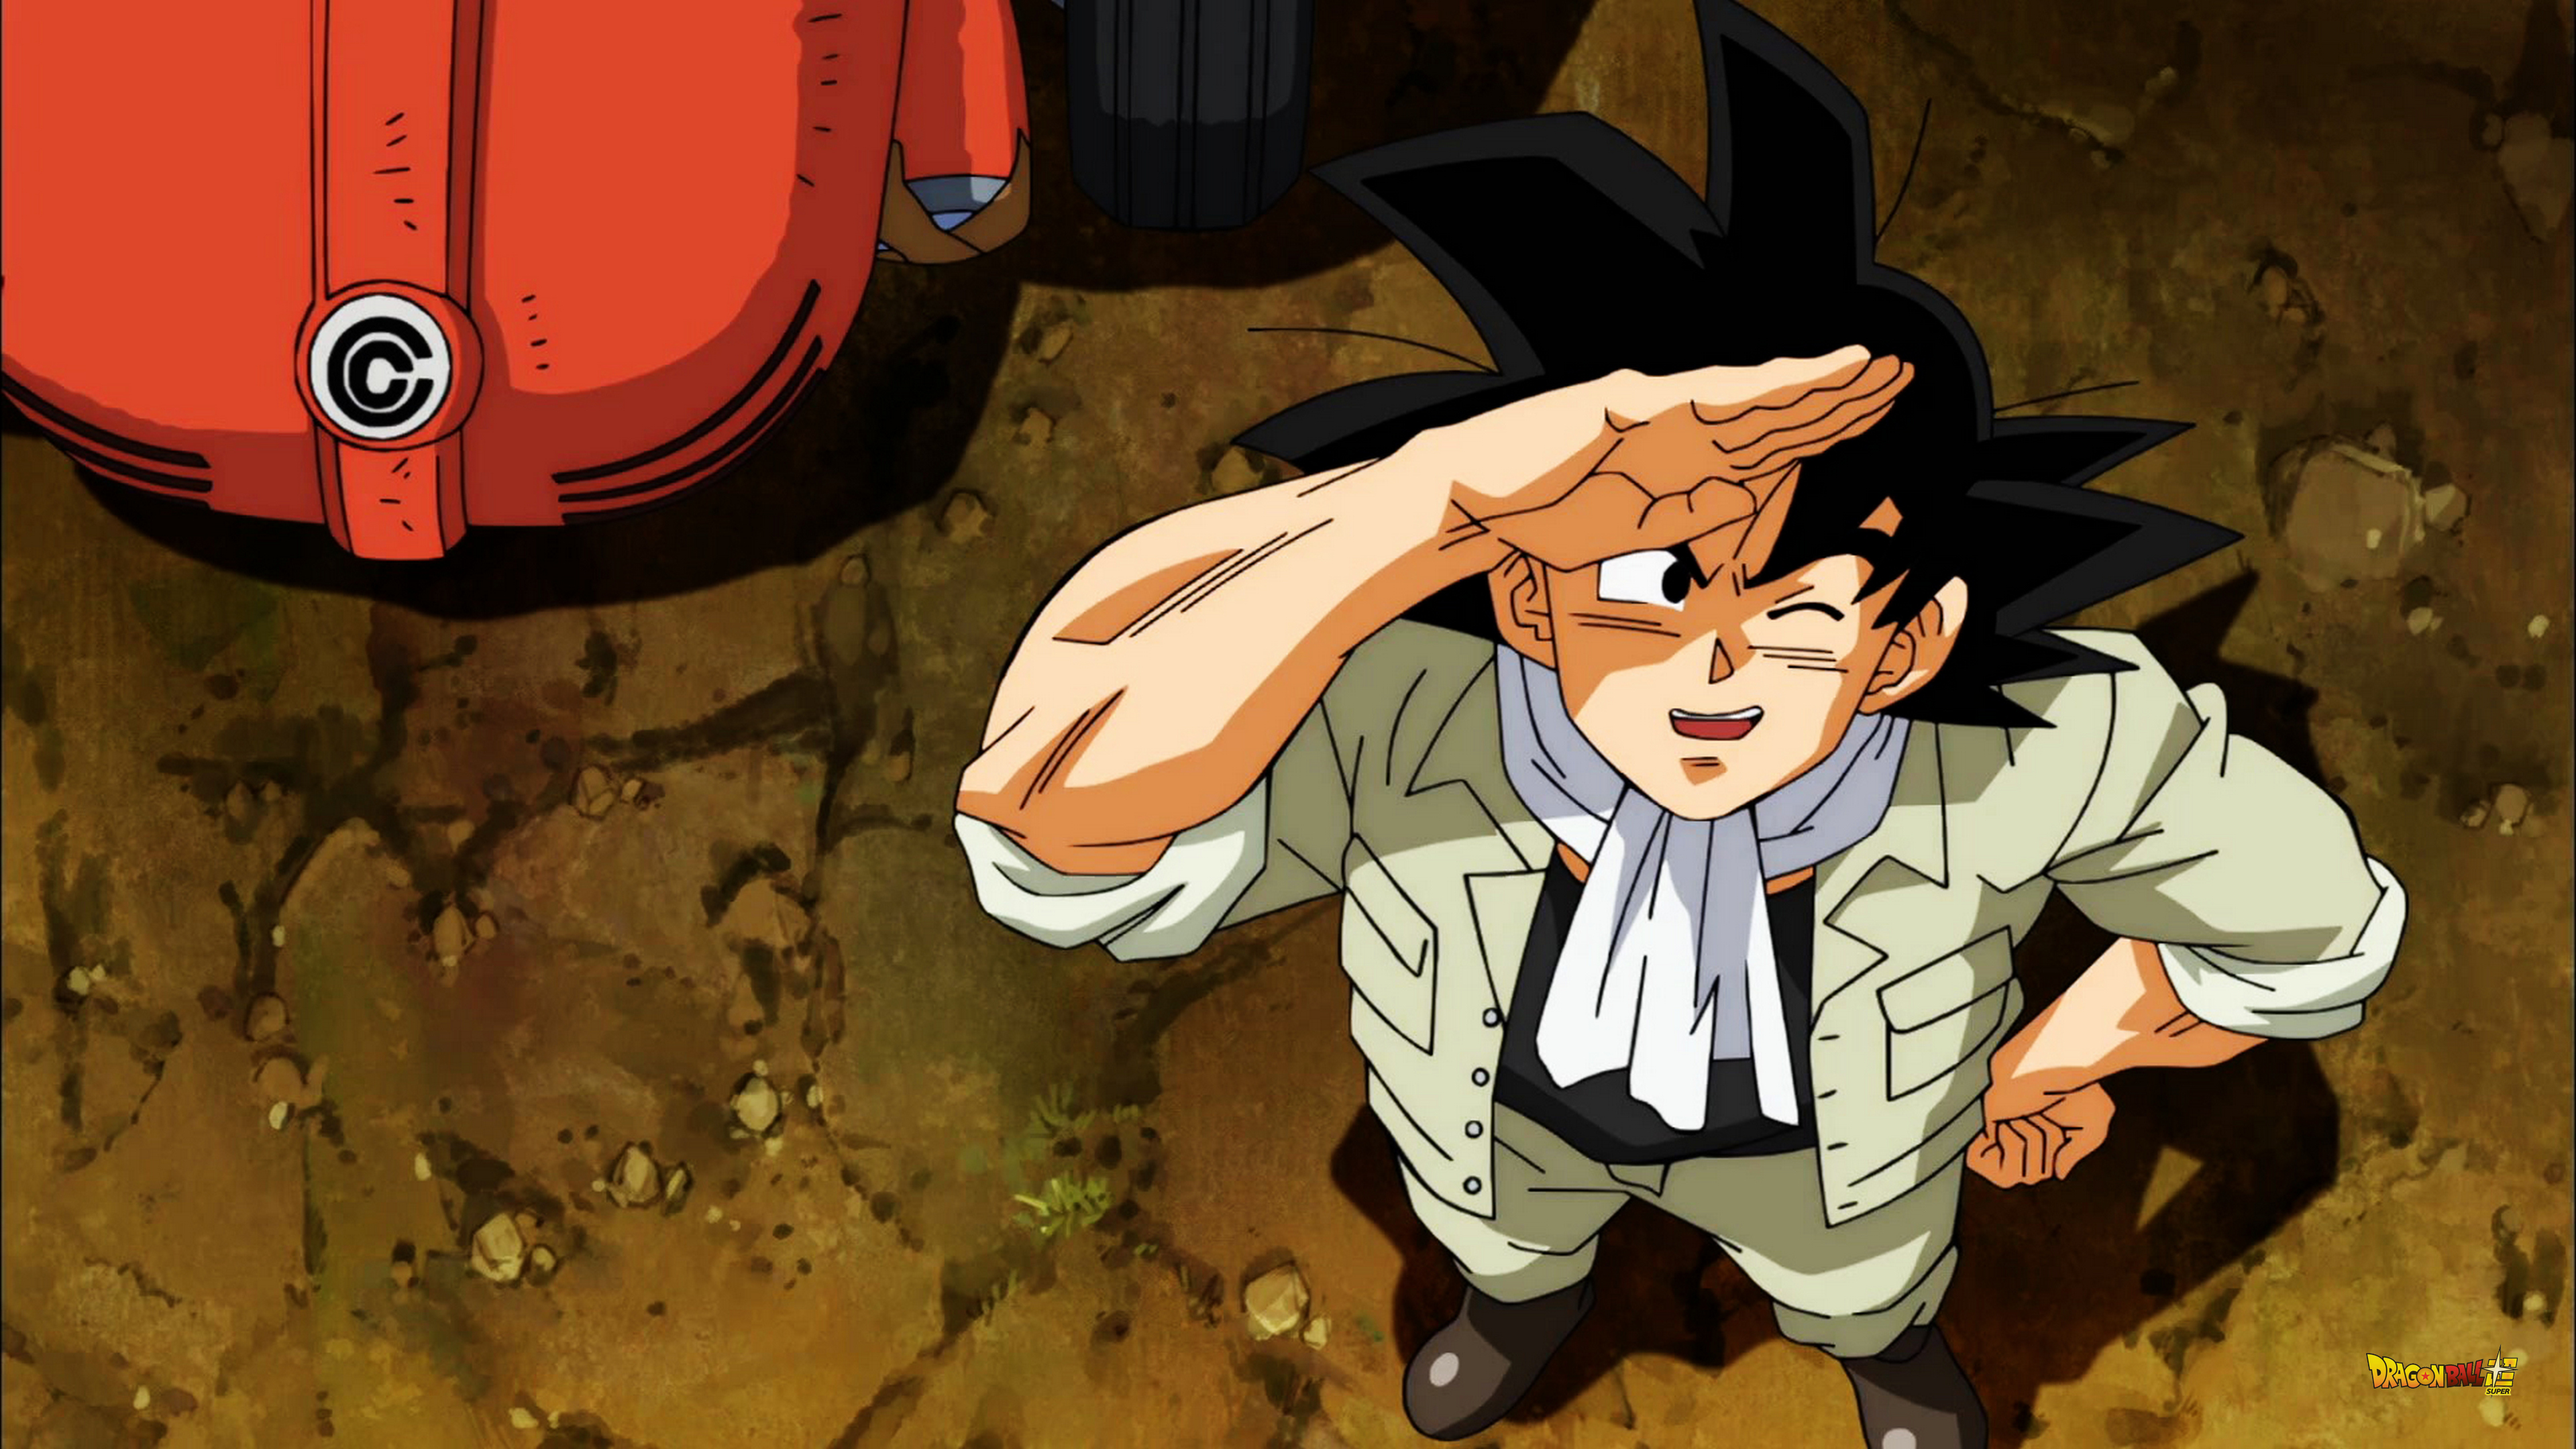 Dragon Ball Super Season 1 Episode 1 S01E01 4k uHD Wallpapers 08 Goku works in his radish field, but wants to go training and fighting.